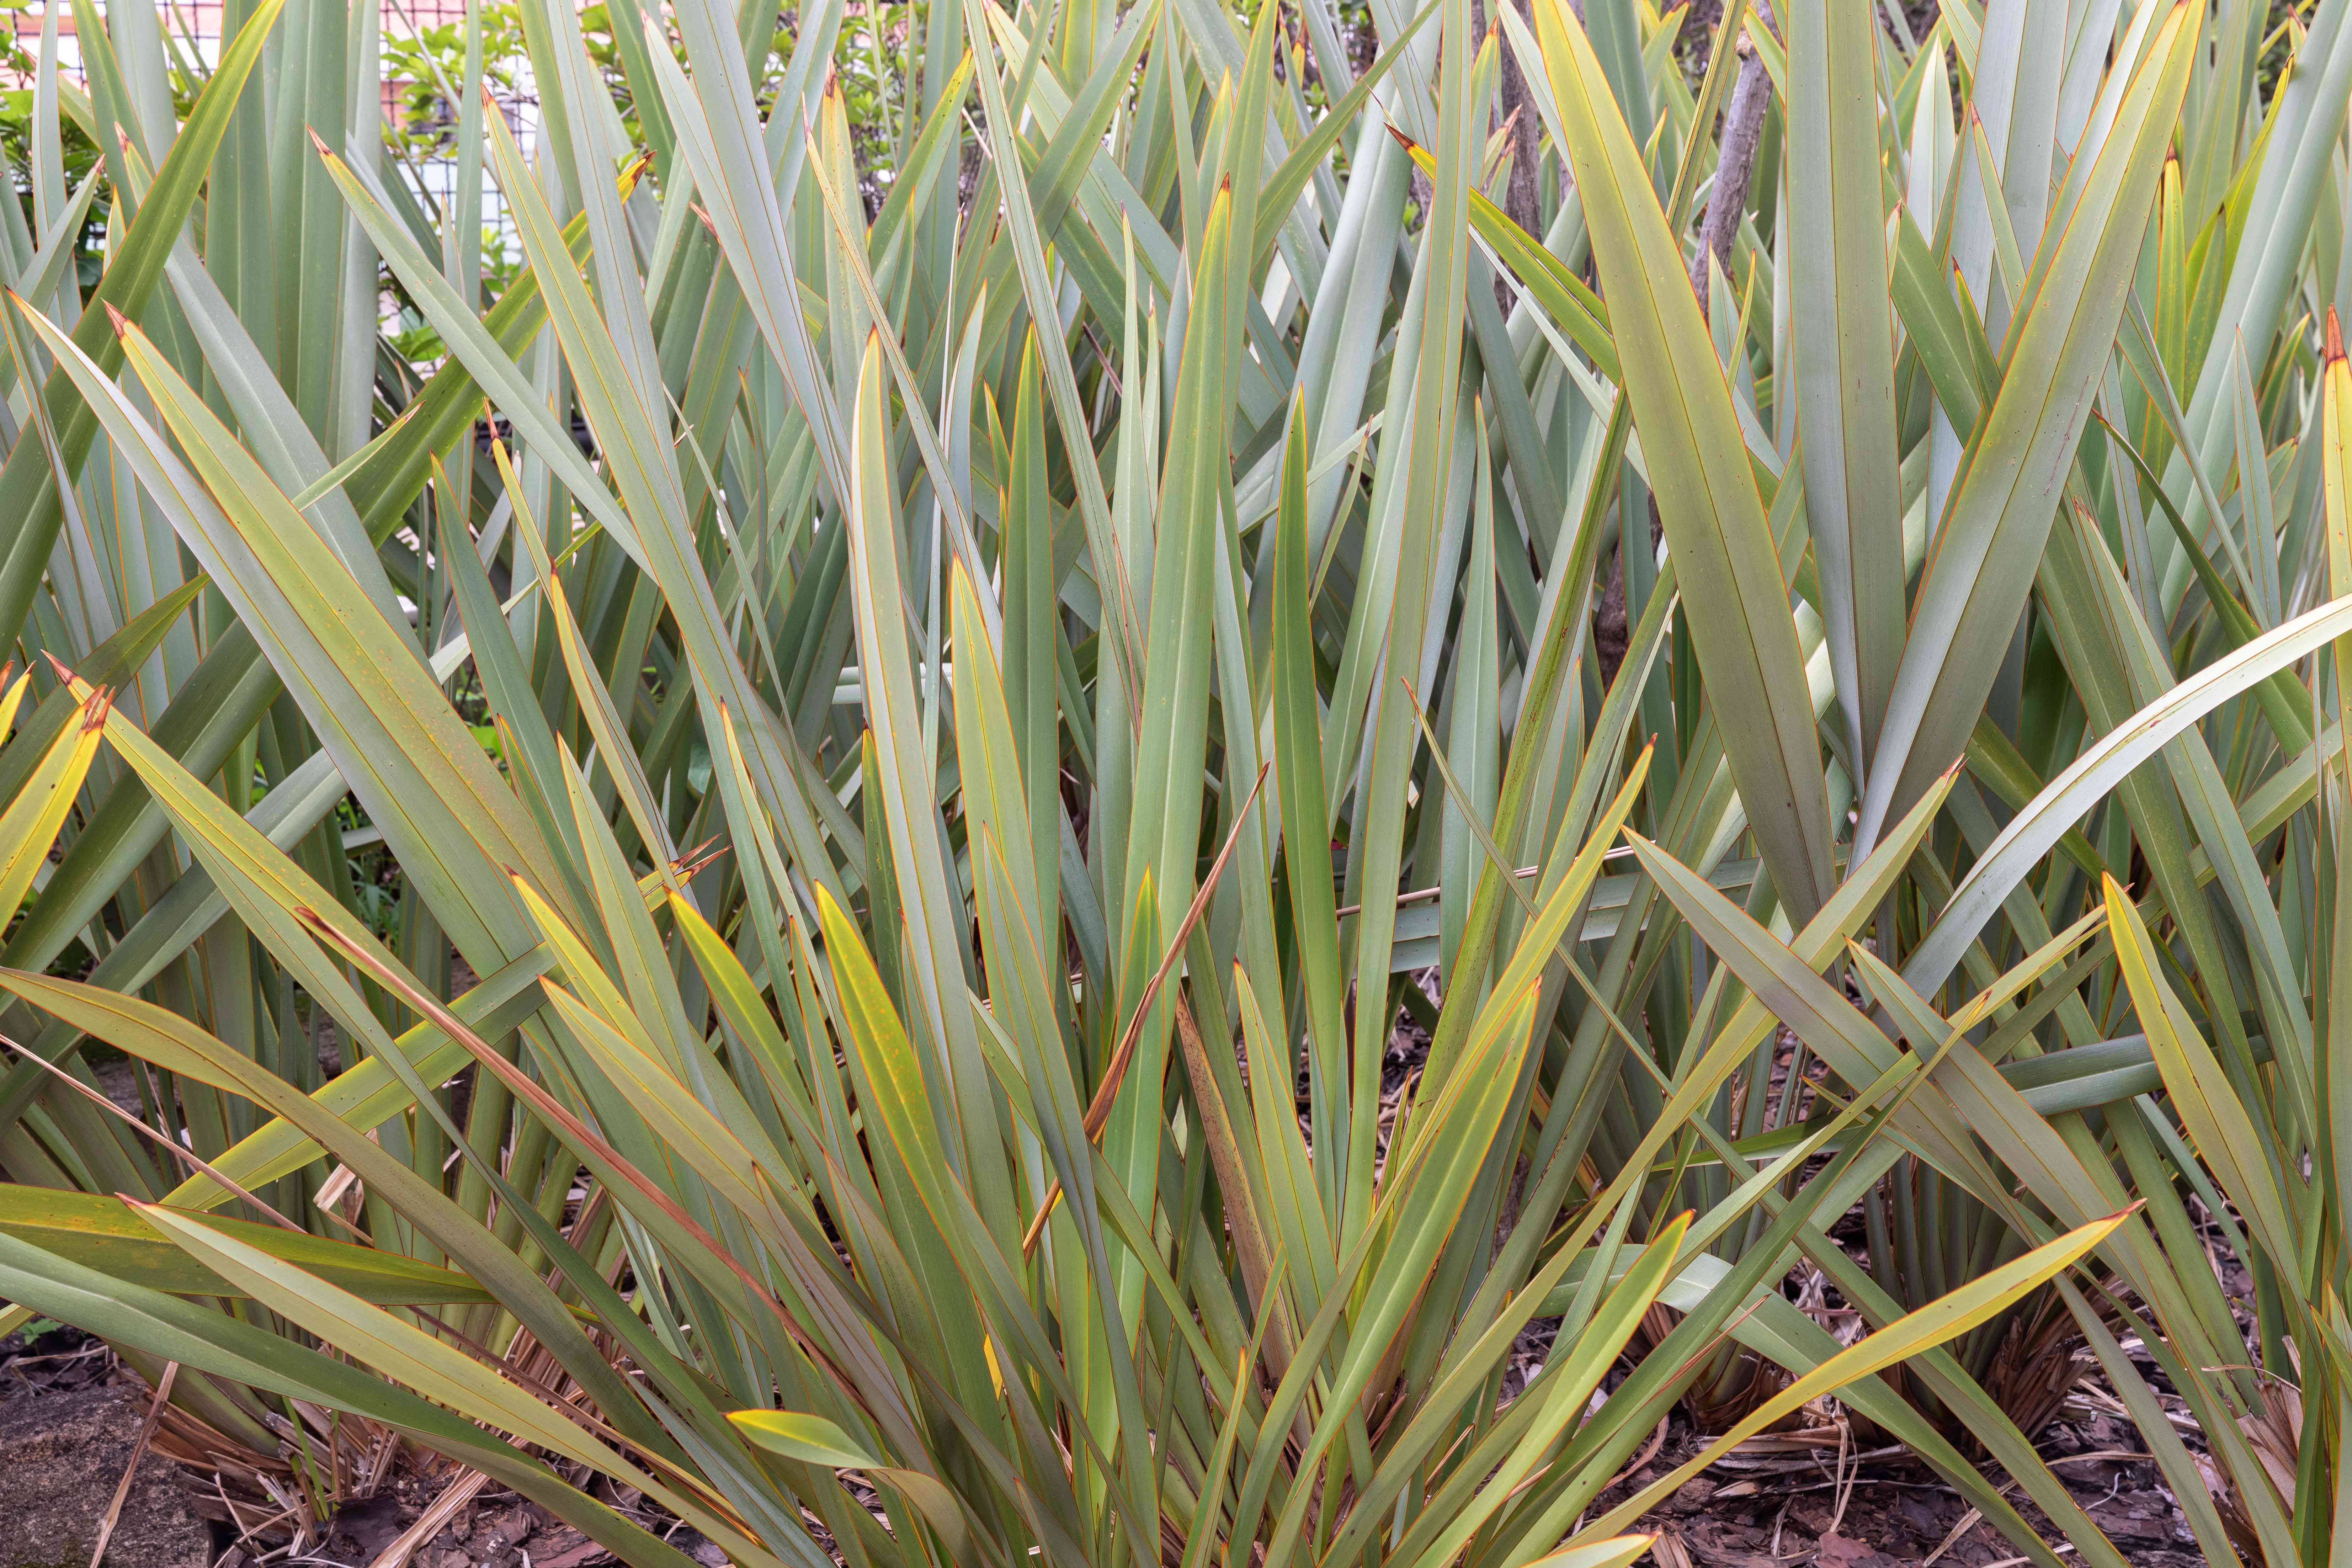 New Zealand flax ornamental grass with broad strap-like leaves fanned out